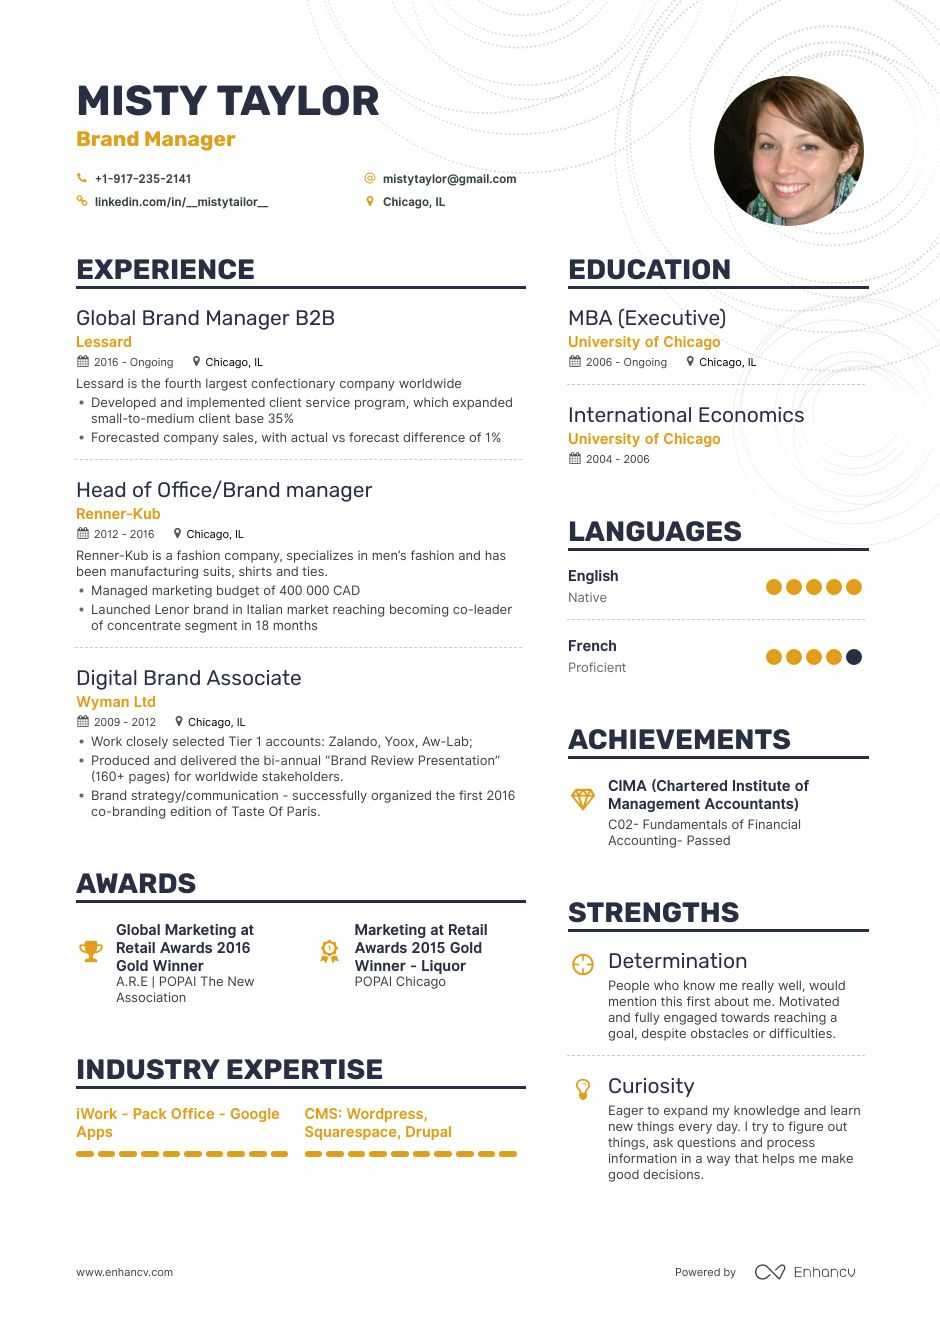 brand manager resume examples and skills you need to get hired ask example google book Resume Ask A Manager Resume Example